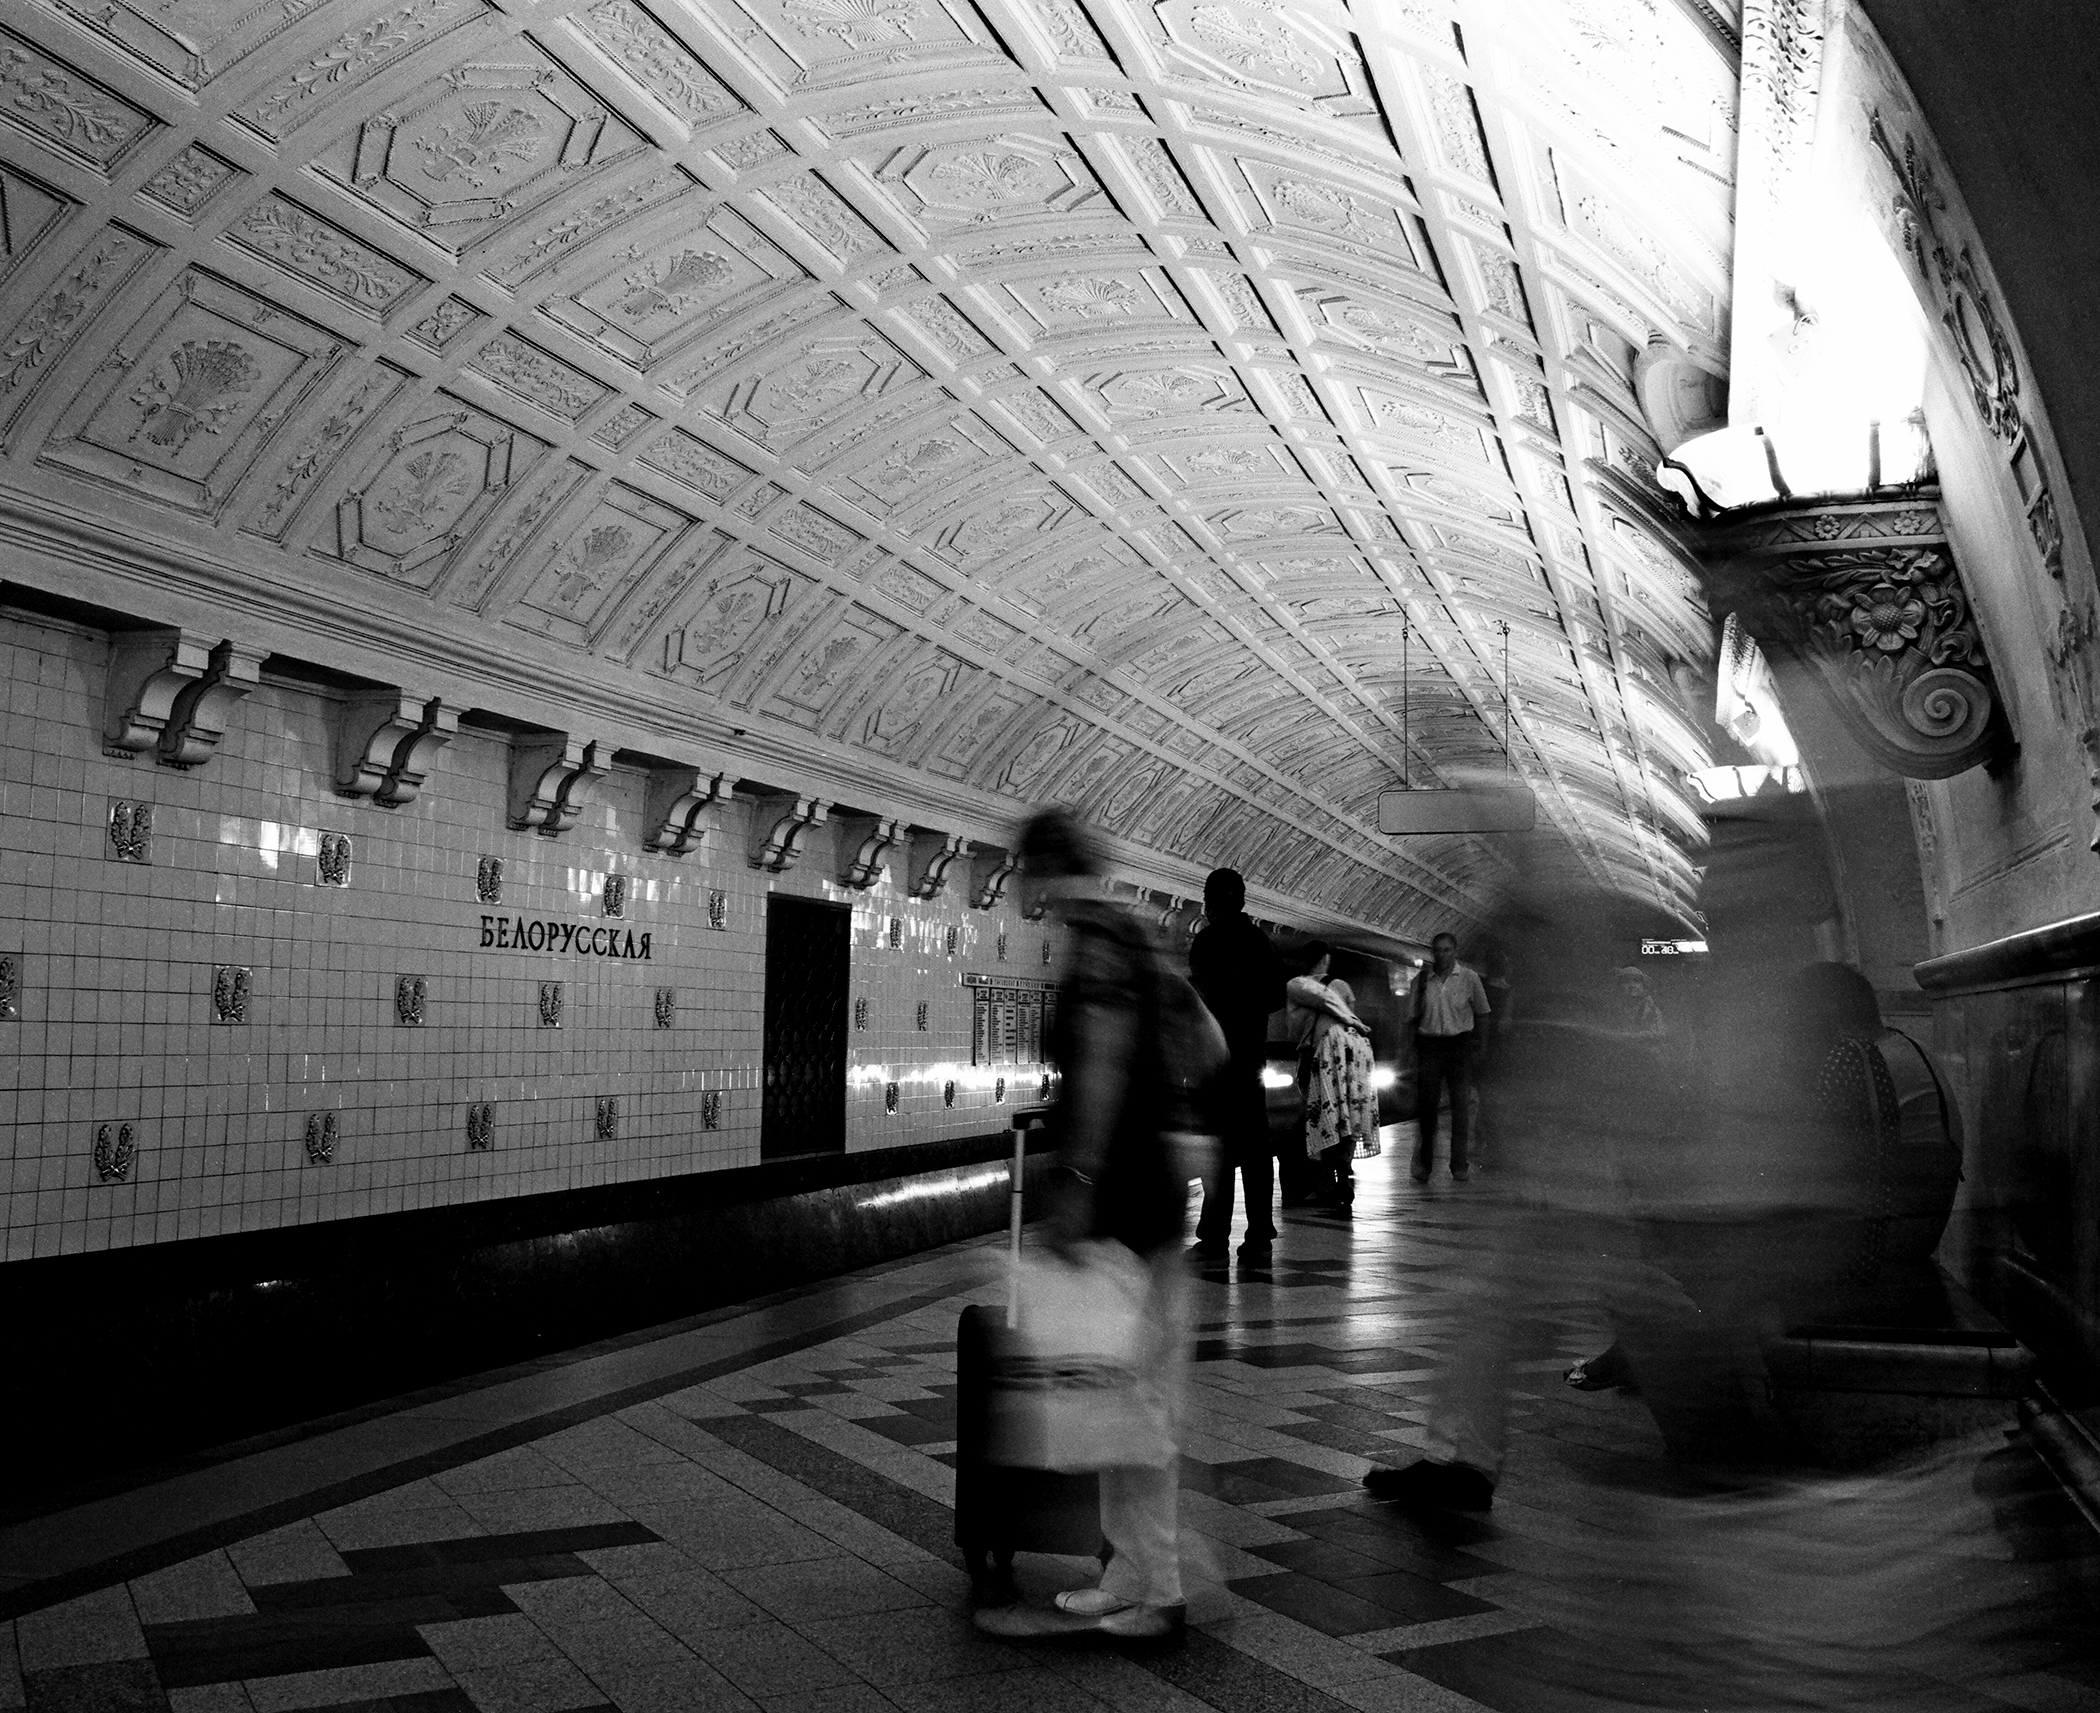 ILFORD HP5 PLUS - ILFORD HP5 PLUS vs Kodak Tri-X 400 at EI 1600 in the Moscow Metro